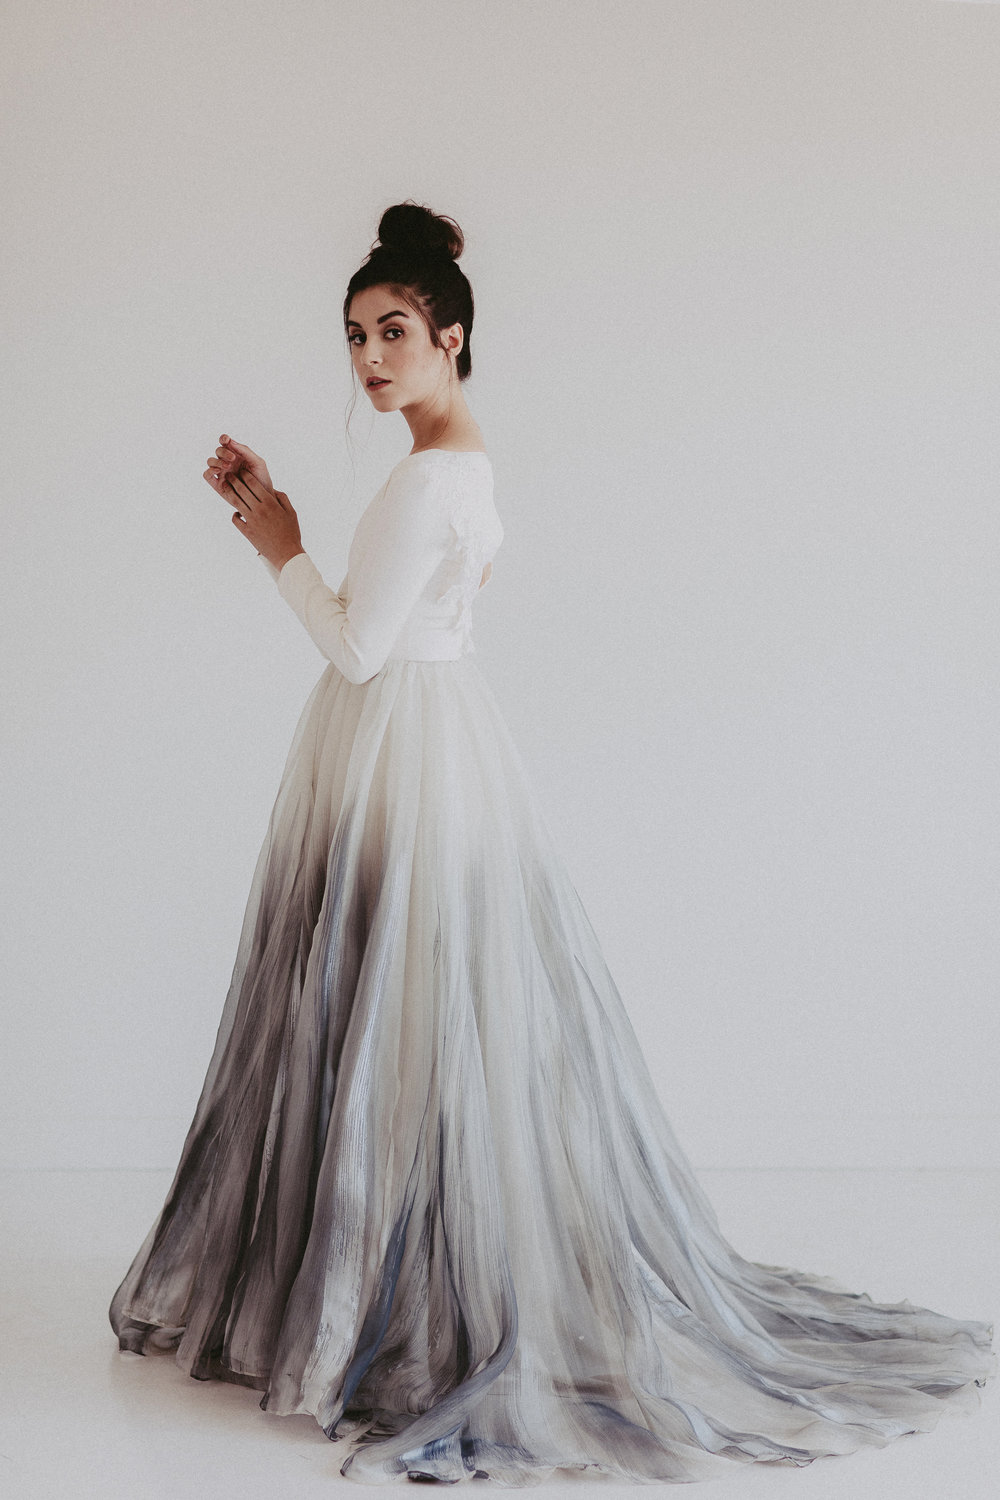 Brindle hand painted skirt by Chantel Lauren wedding gown bride